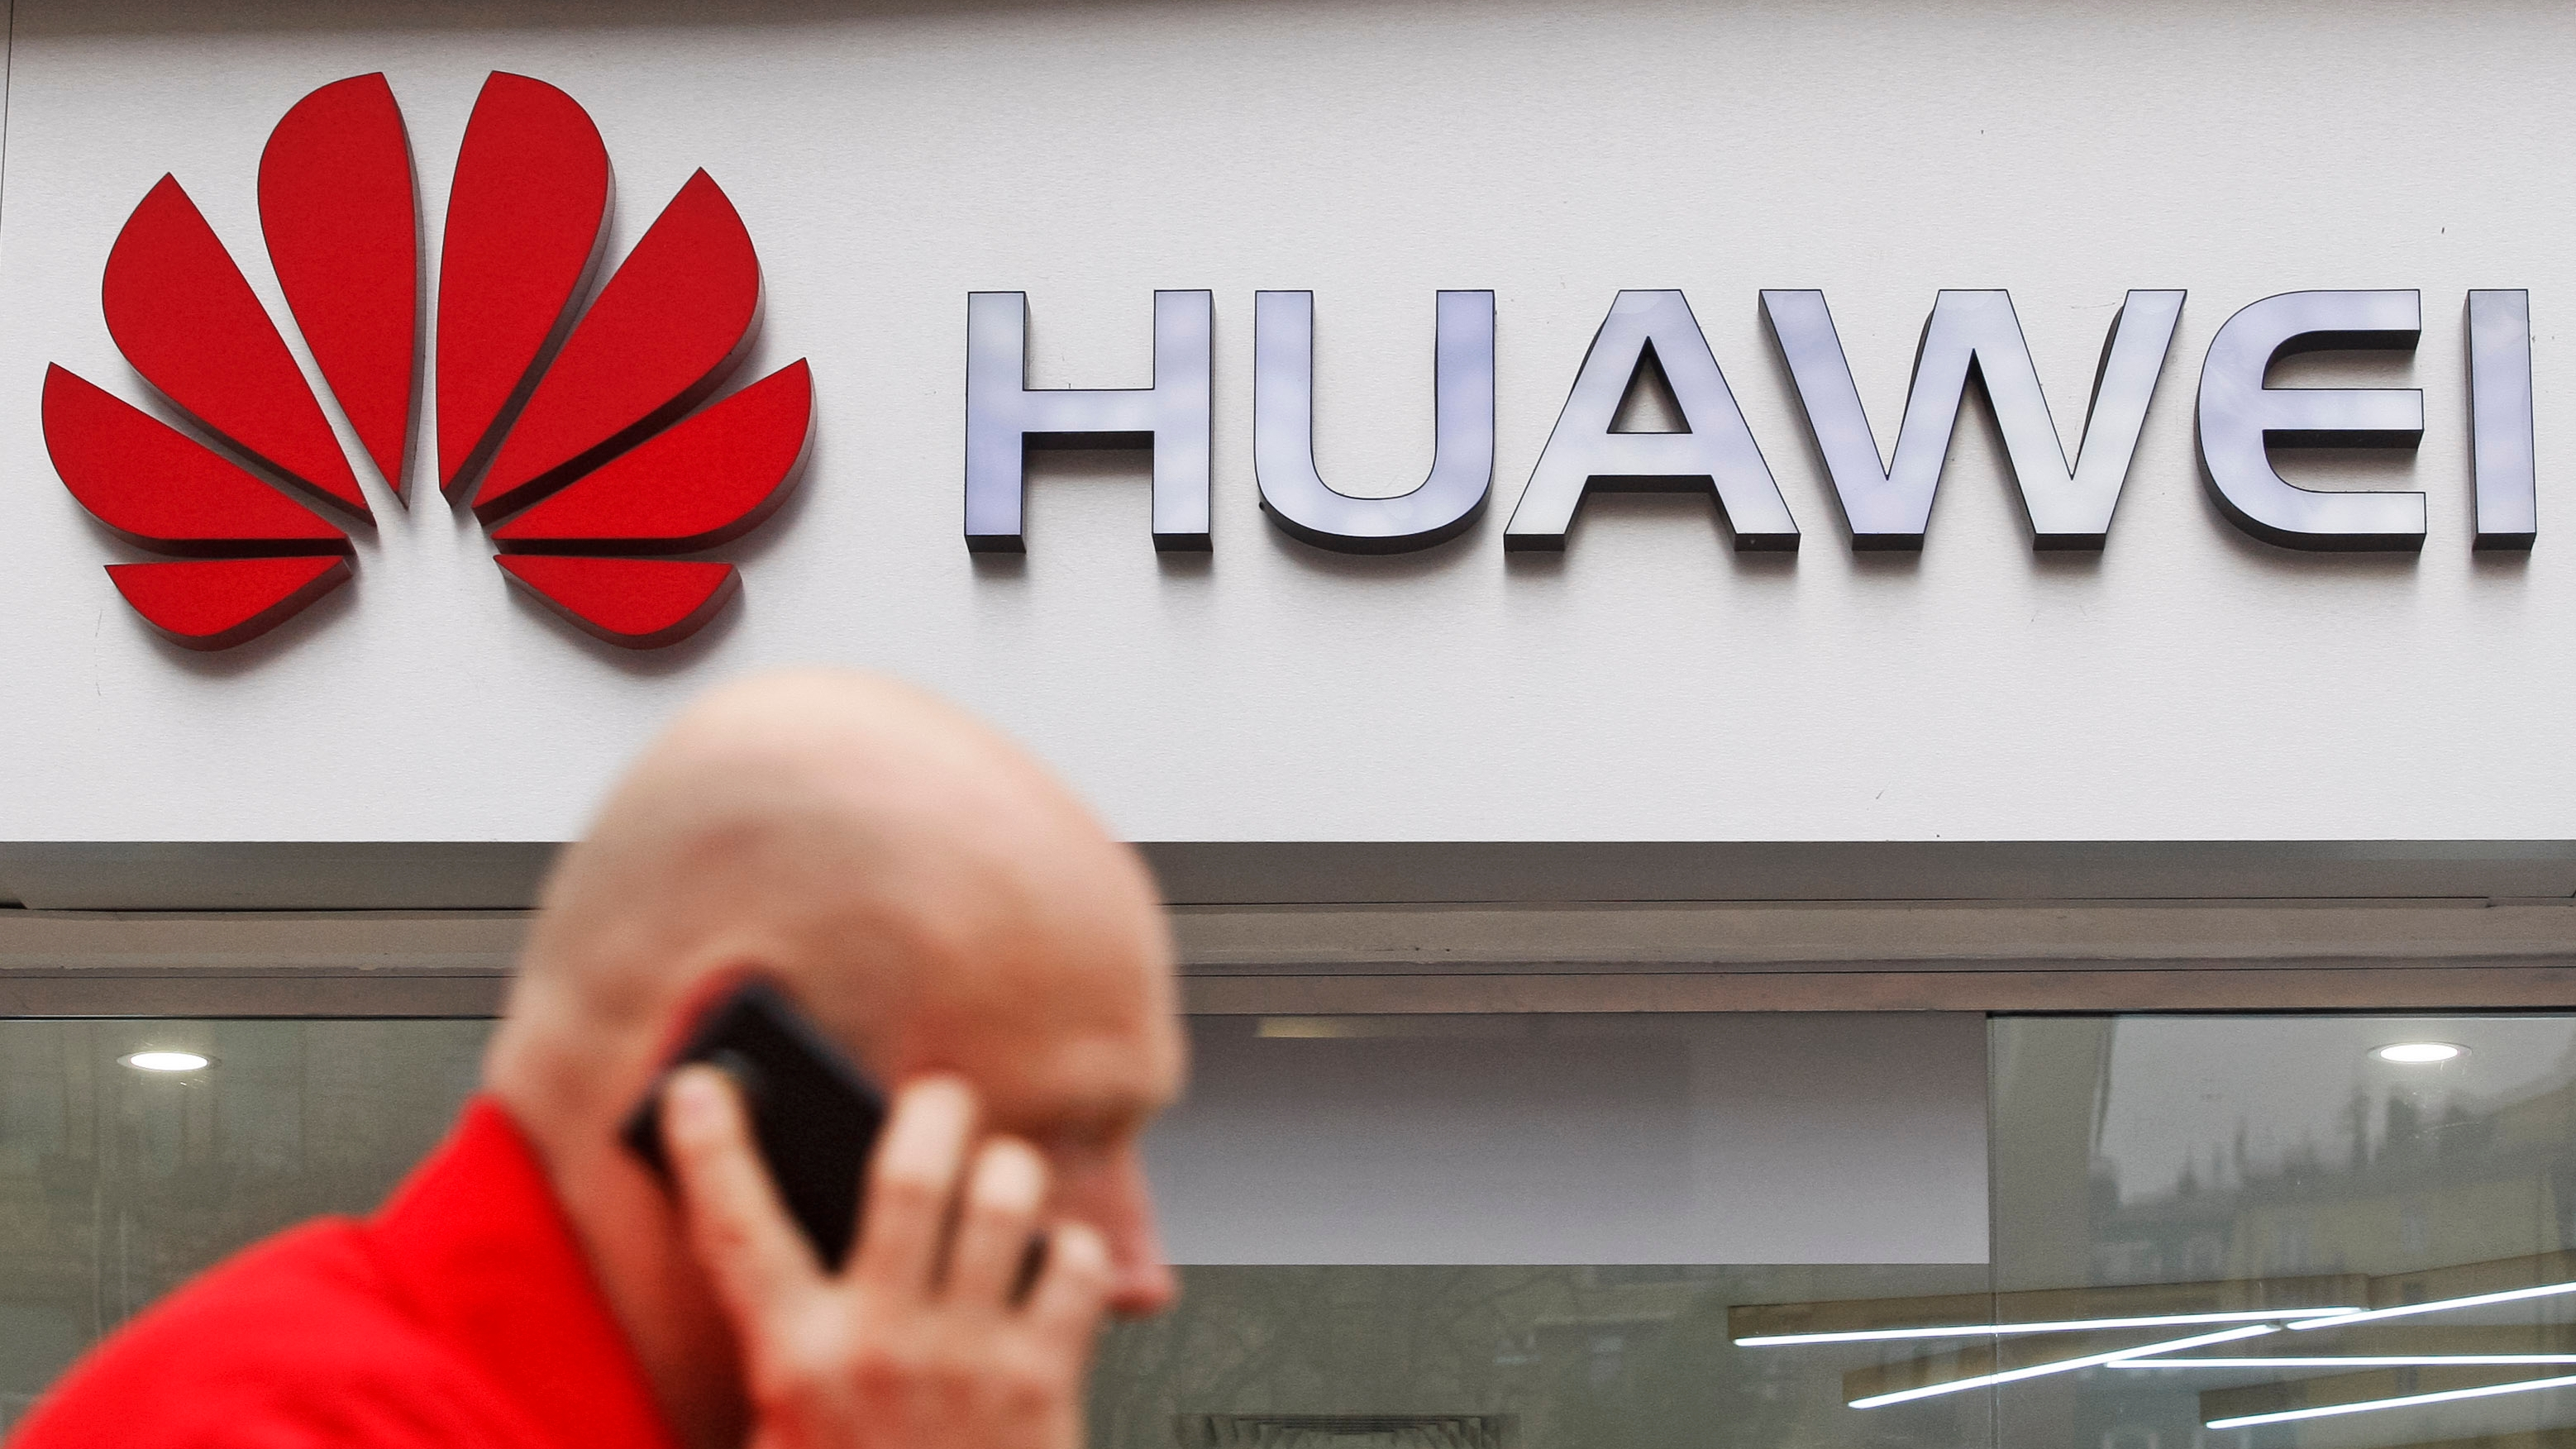 Got a Huawei phone? Your rights as Google prepares to restrict its